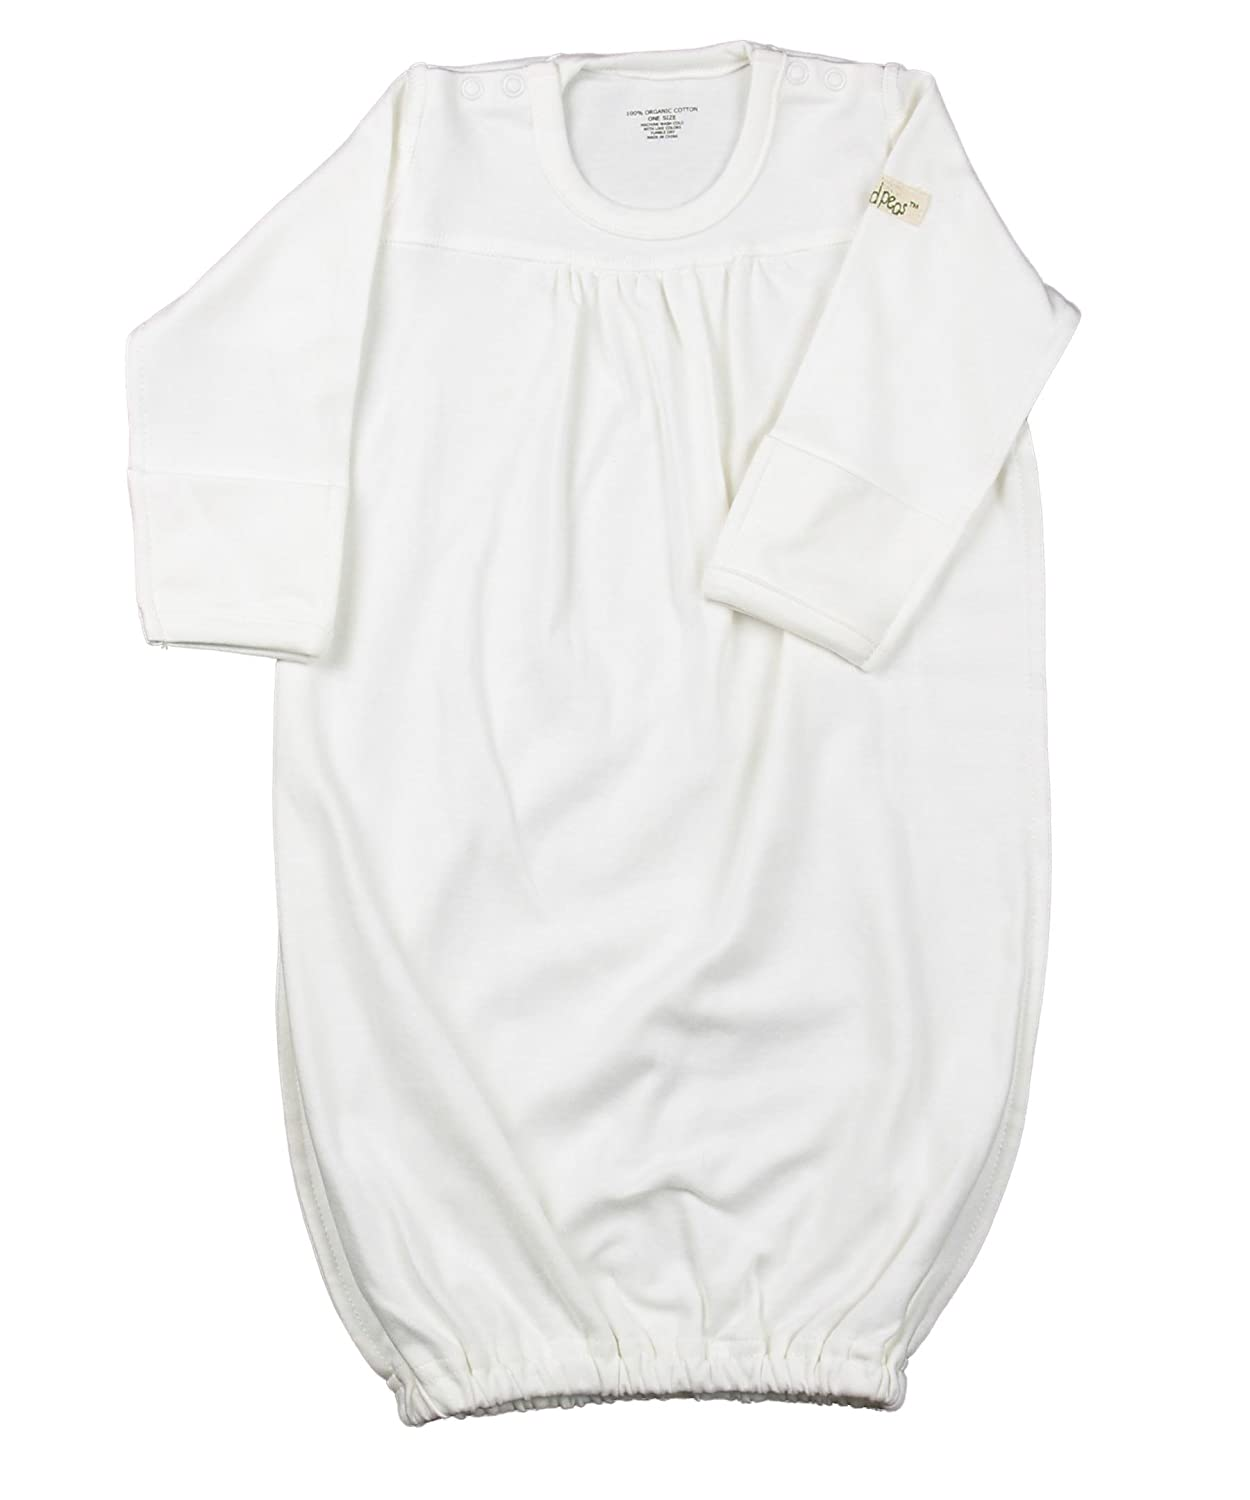 little world peas Baby Gown One Size White